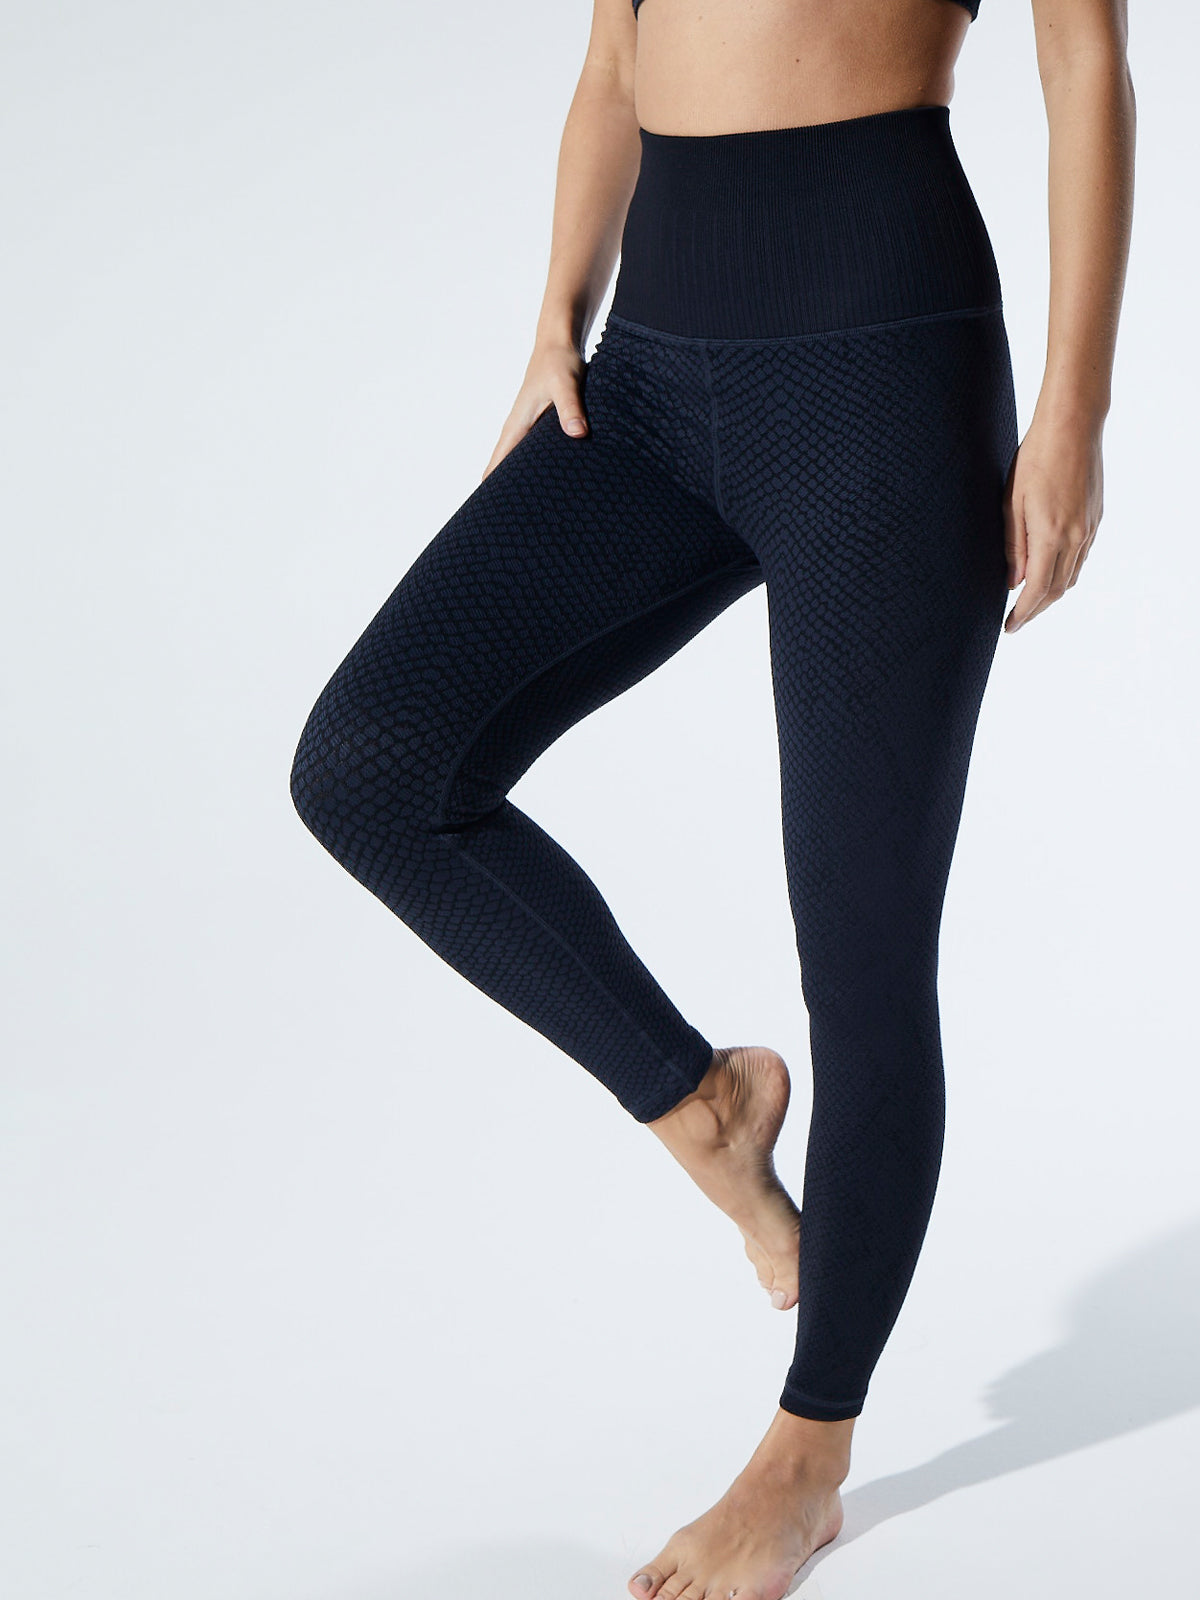 Snake Fire Legging in Midnight